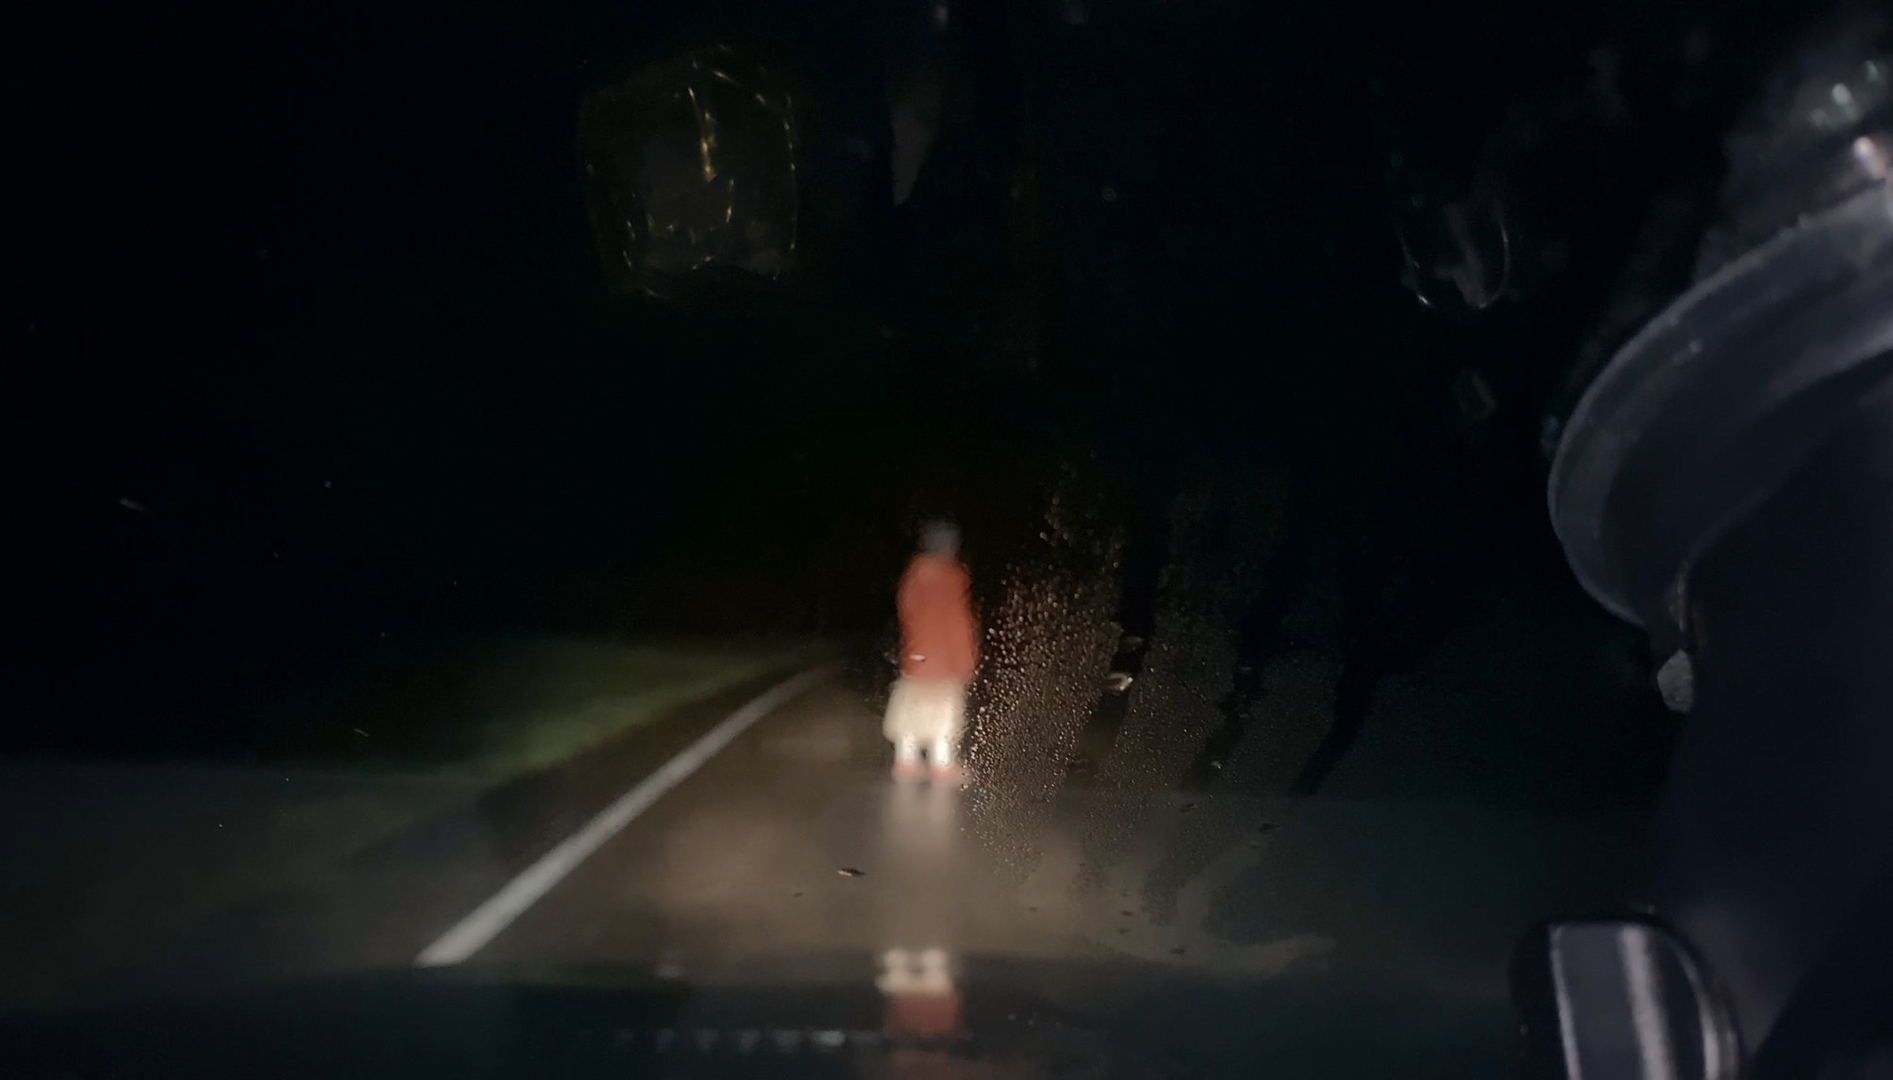 A blurred figure wandering across a highway at night wearing a long orange sweater can be seen through the wet windshield of a car.